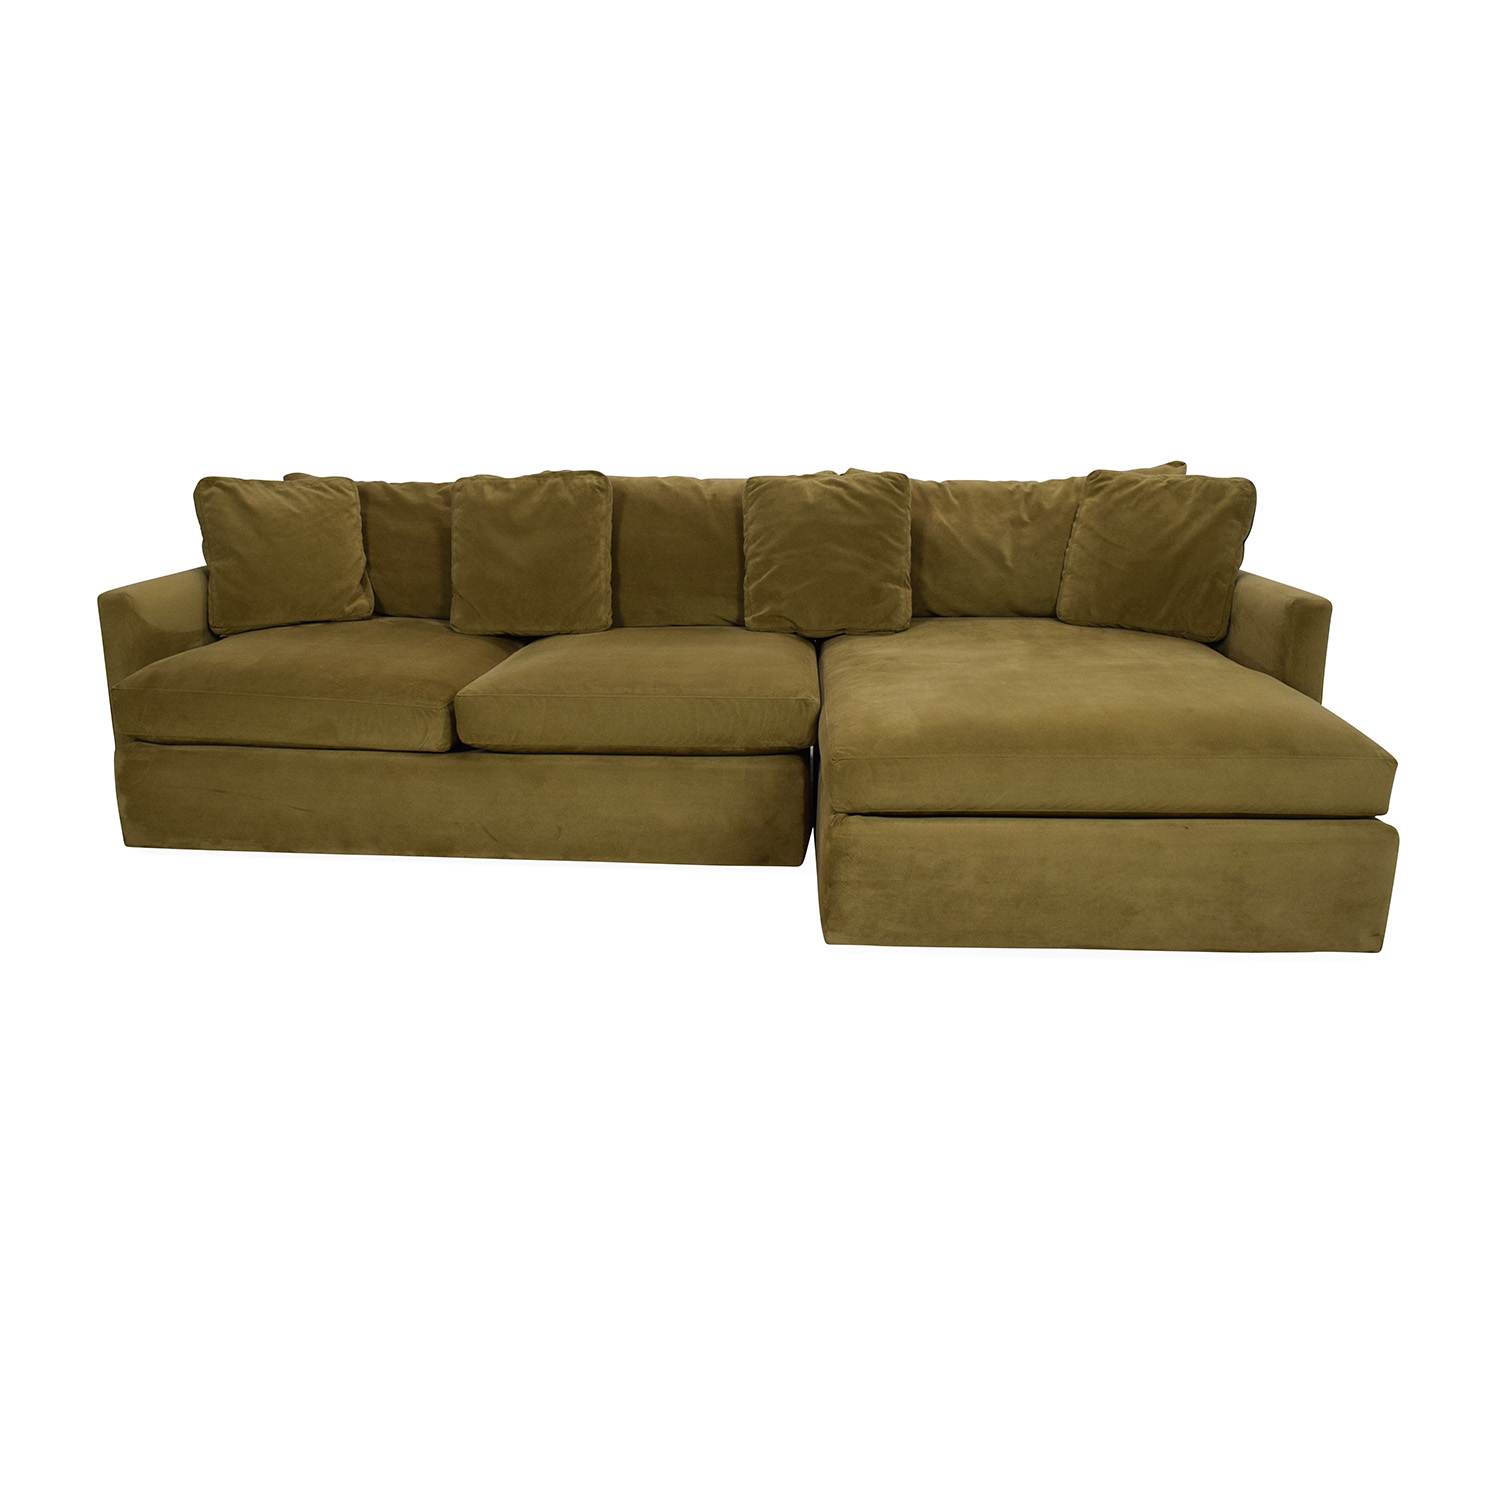 crate and barrel lounge sofa review emble yourself sectional sofas ii soft